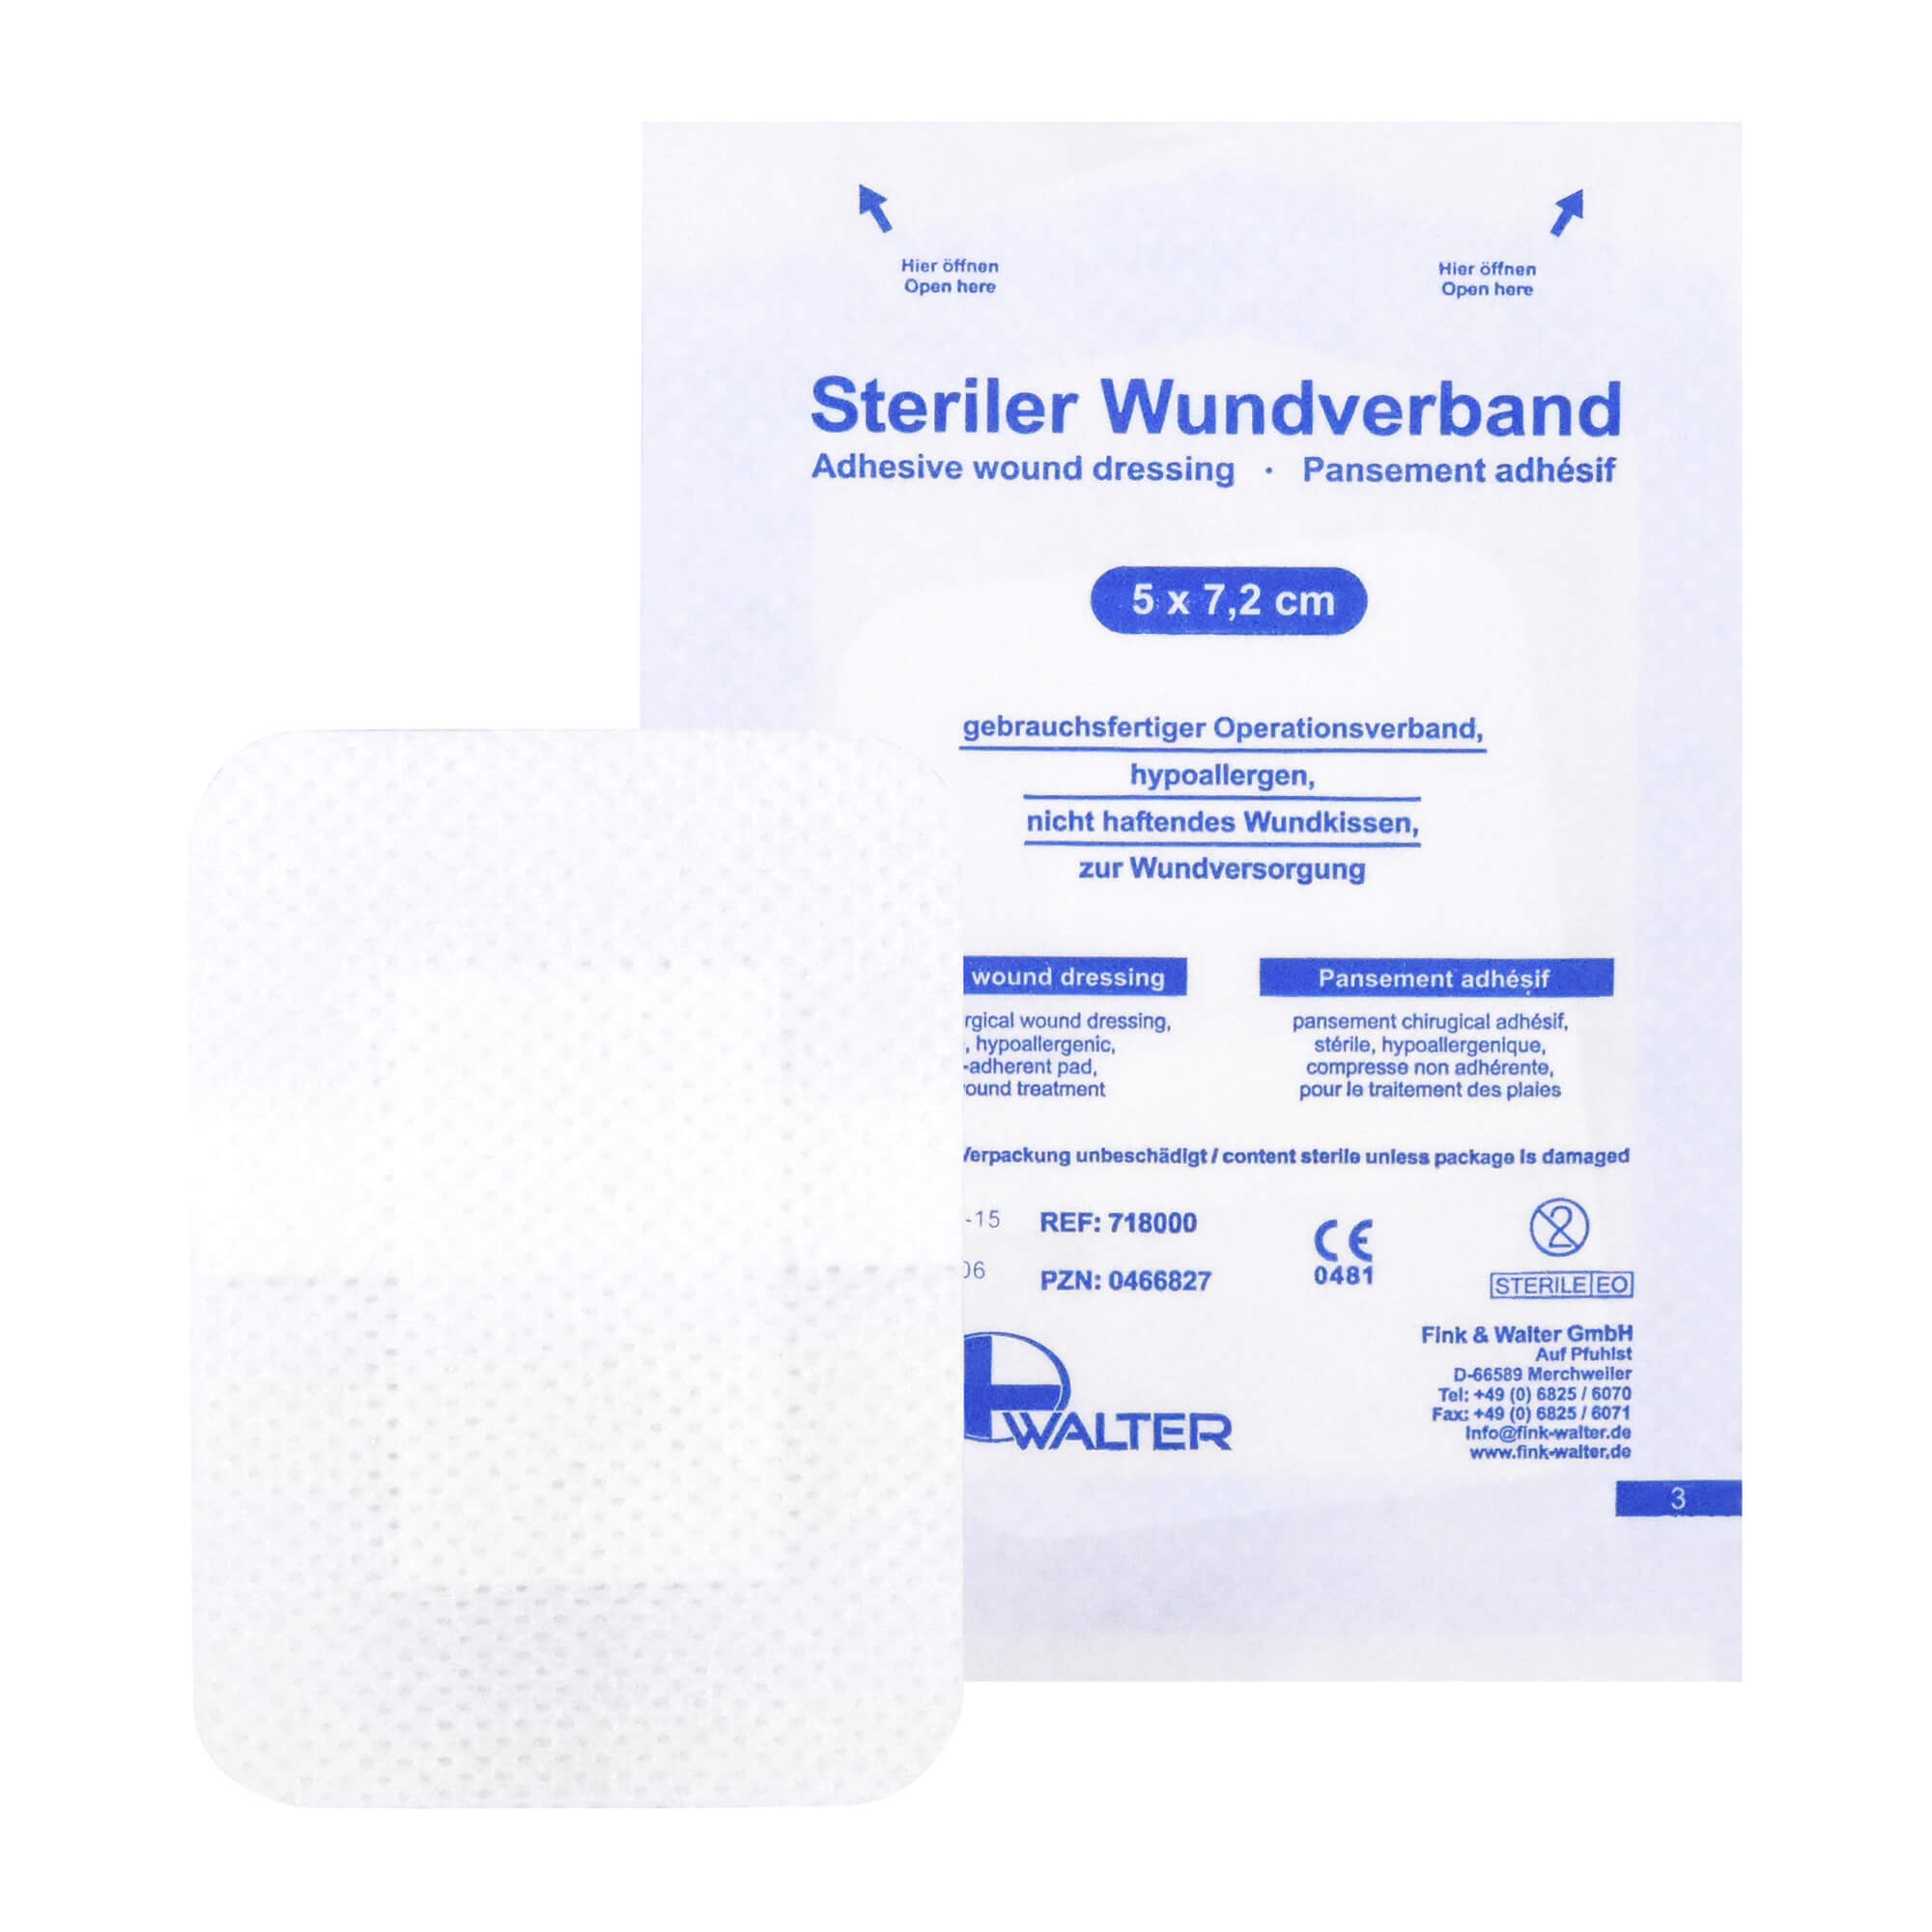 Wundverband Steril 5X7,2 cm